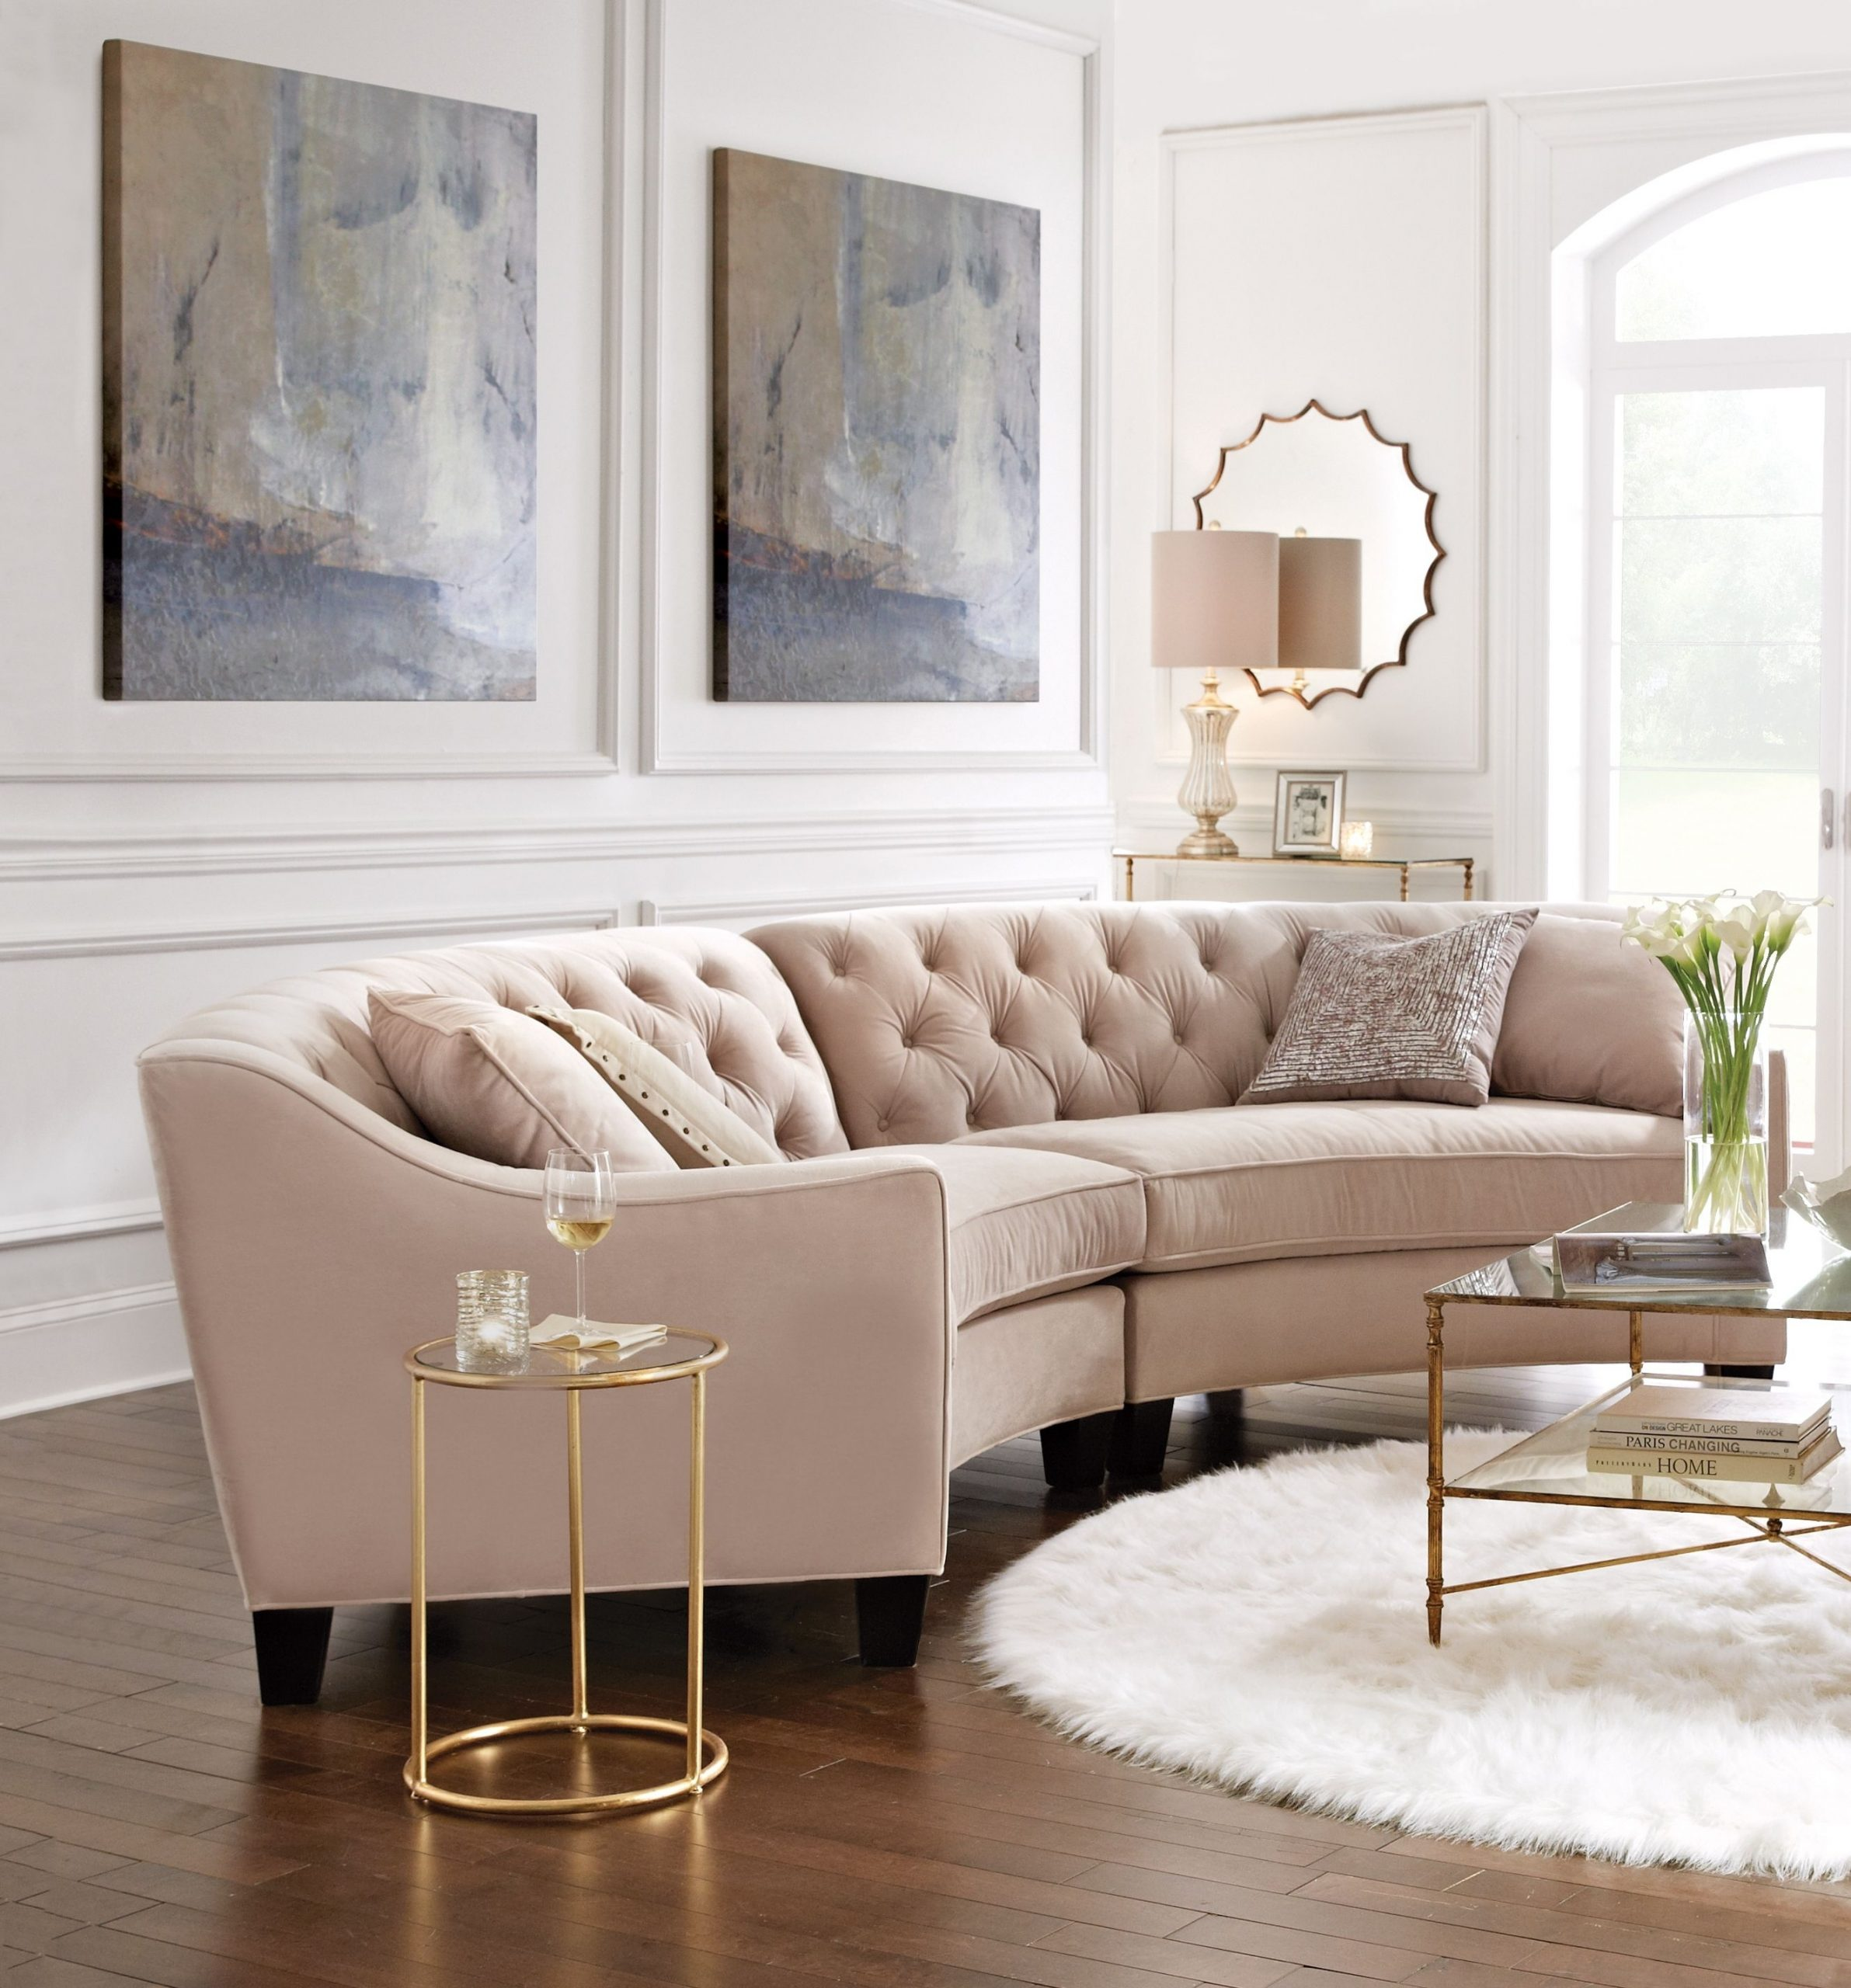 This Curved Sectional Is Great For Conversations inside Family Room Chair